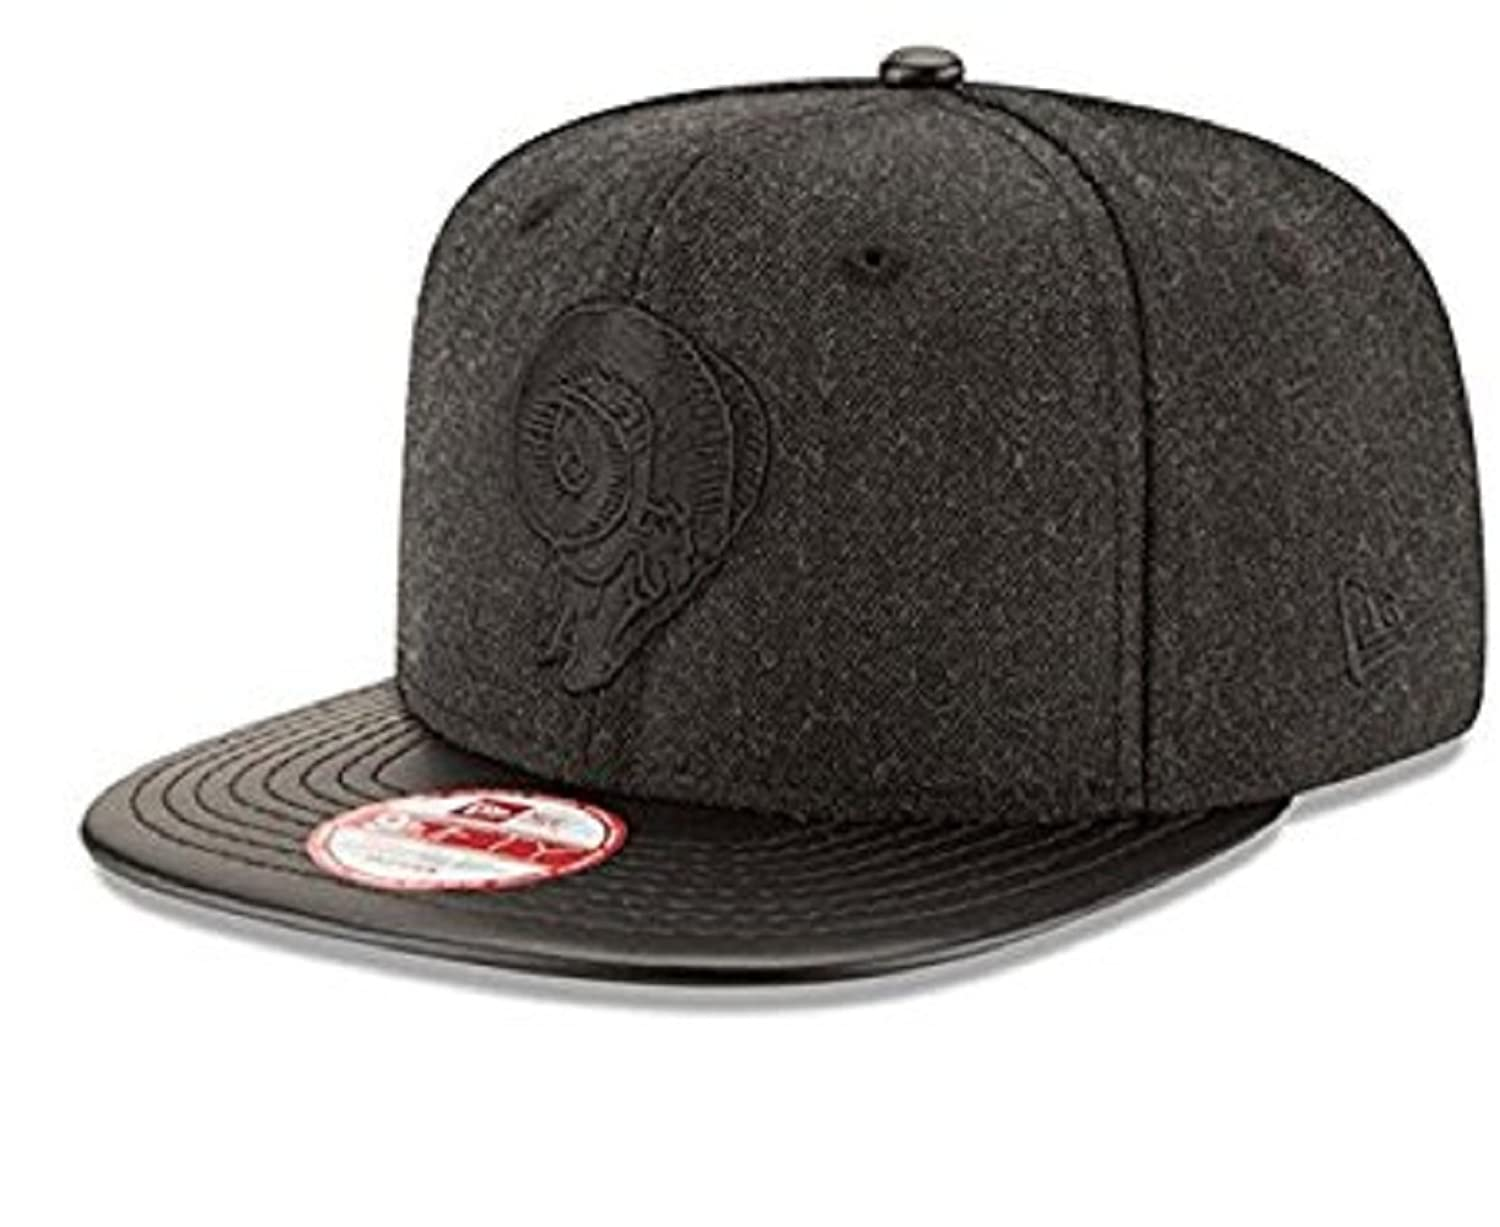 100% Authentic NWT, Rams All Black Hat SnapBack Cap